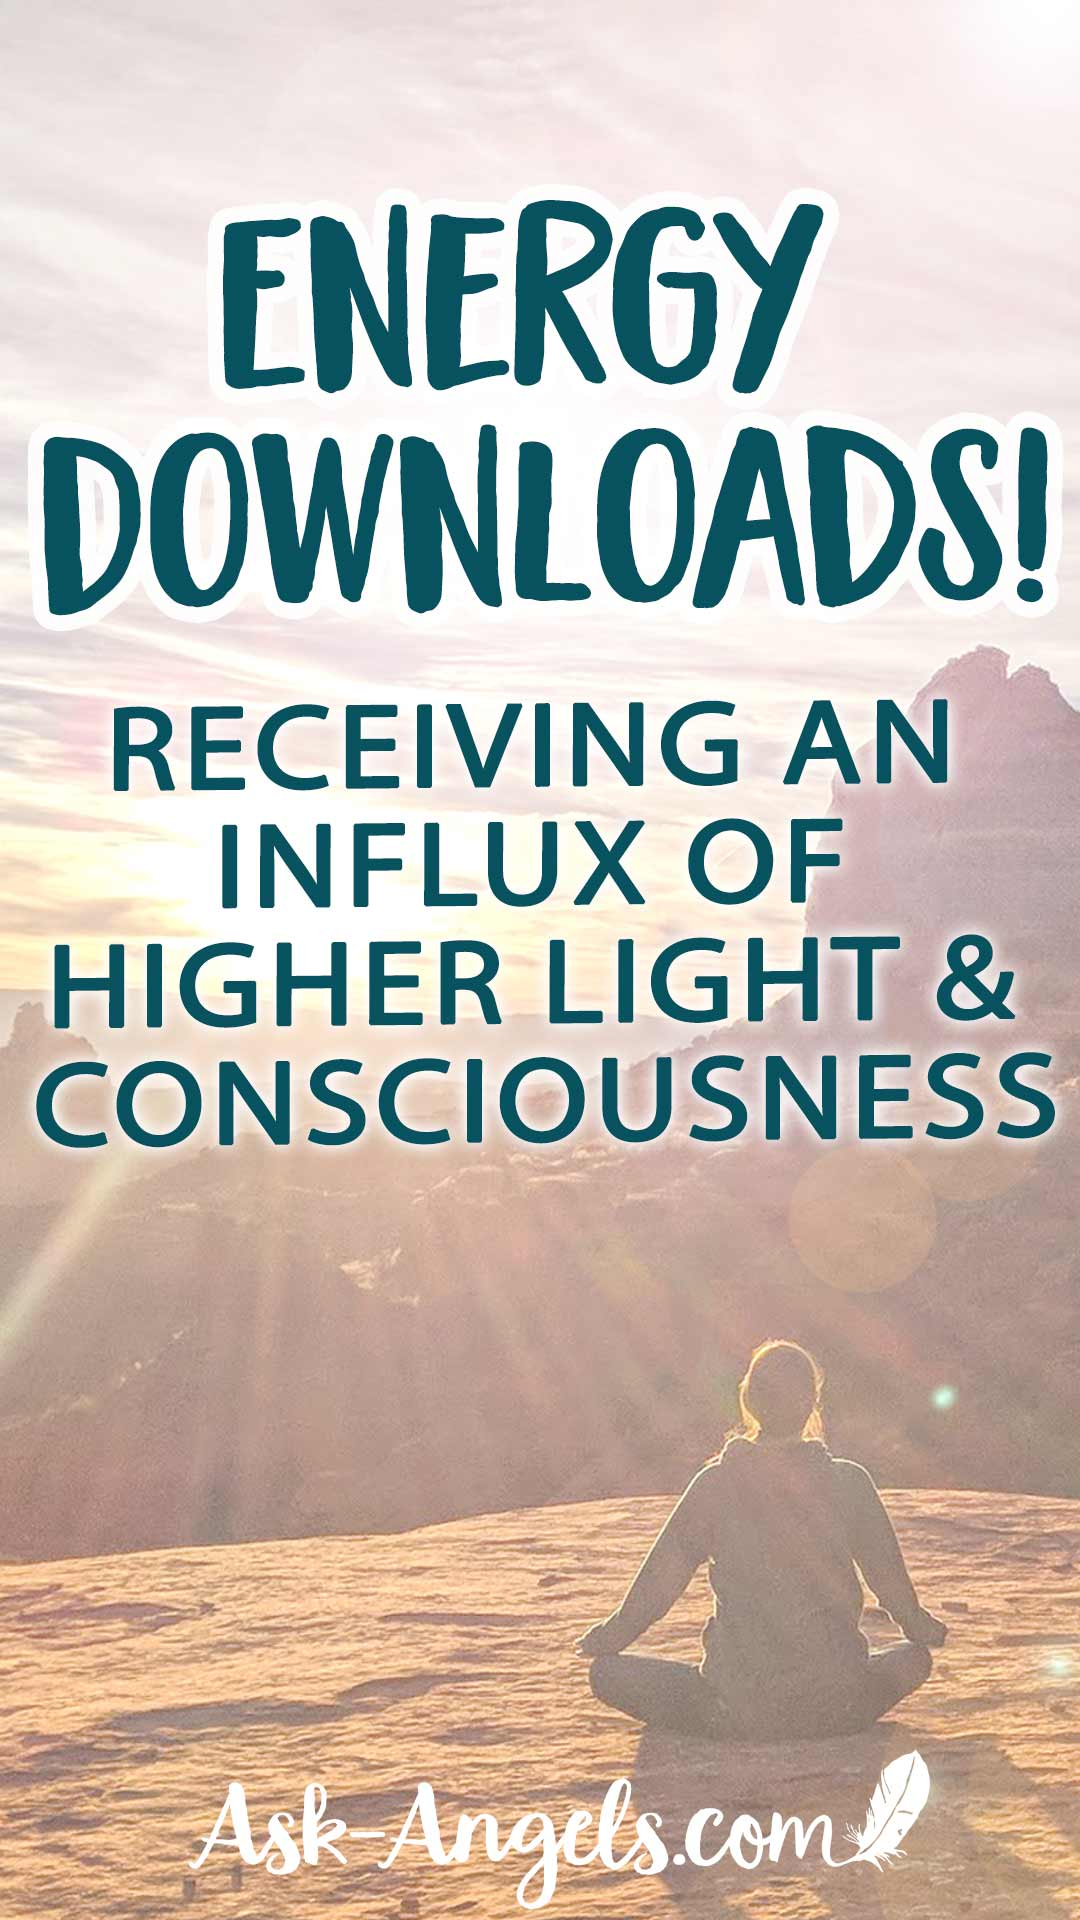 Energy Downloads- receiving an influx of higher light & consciousness